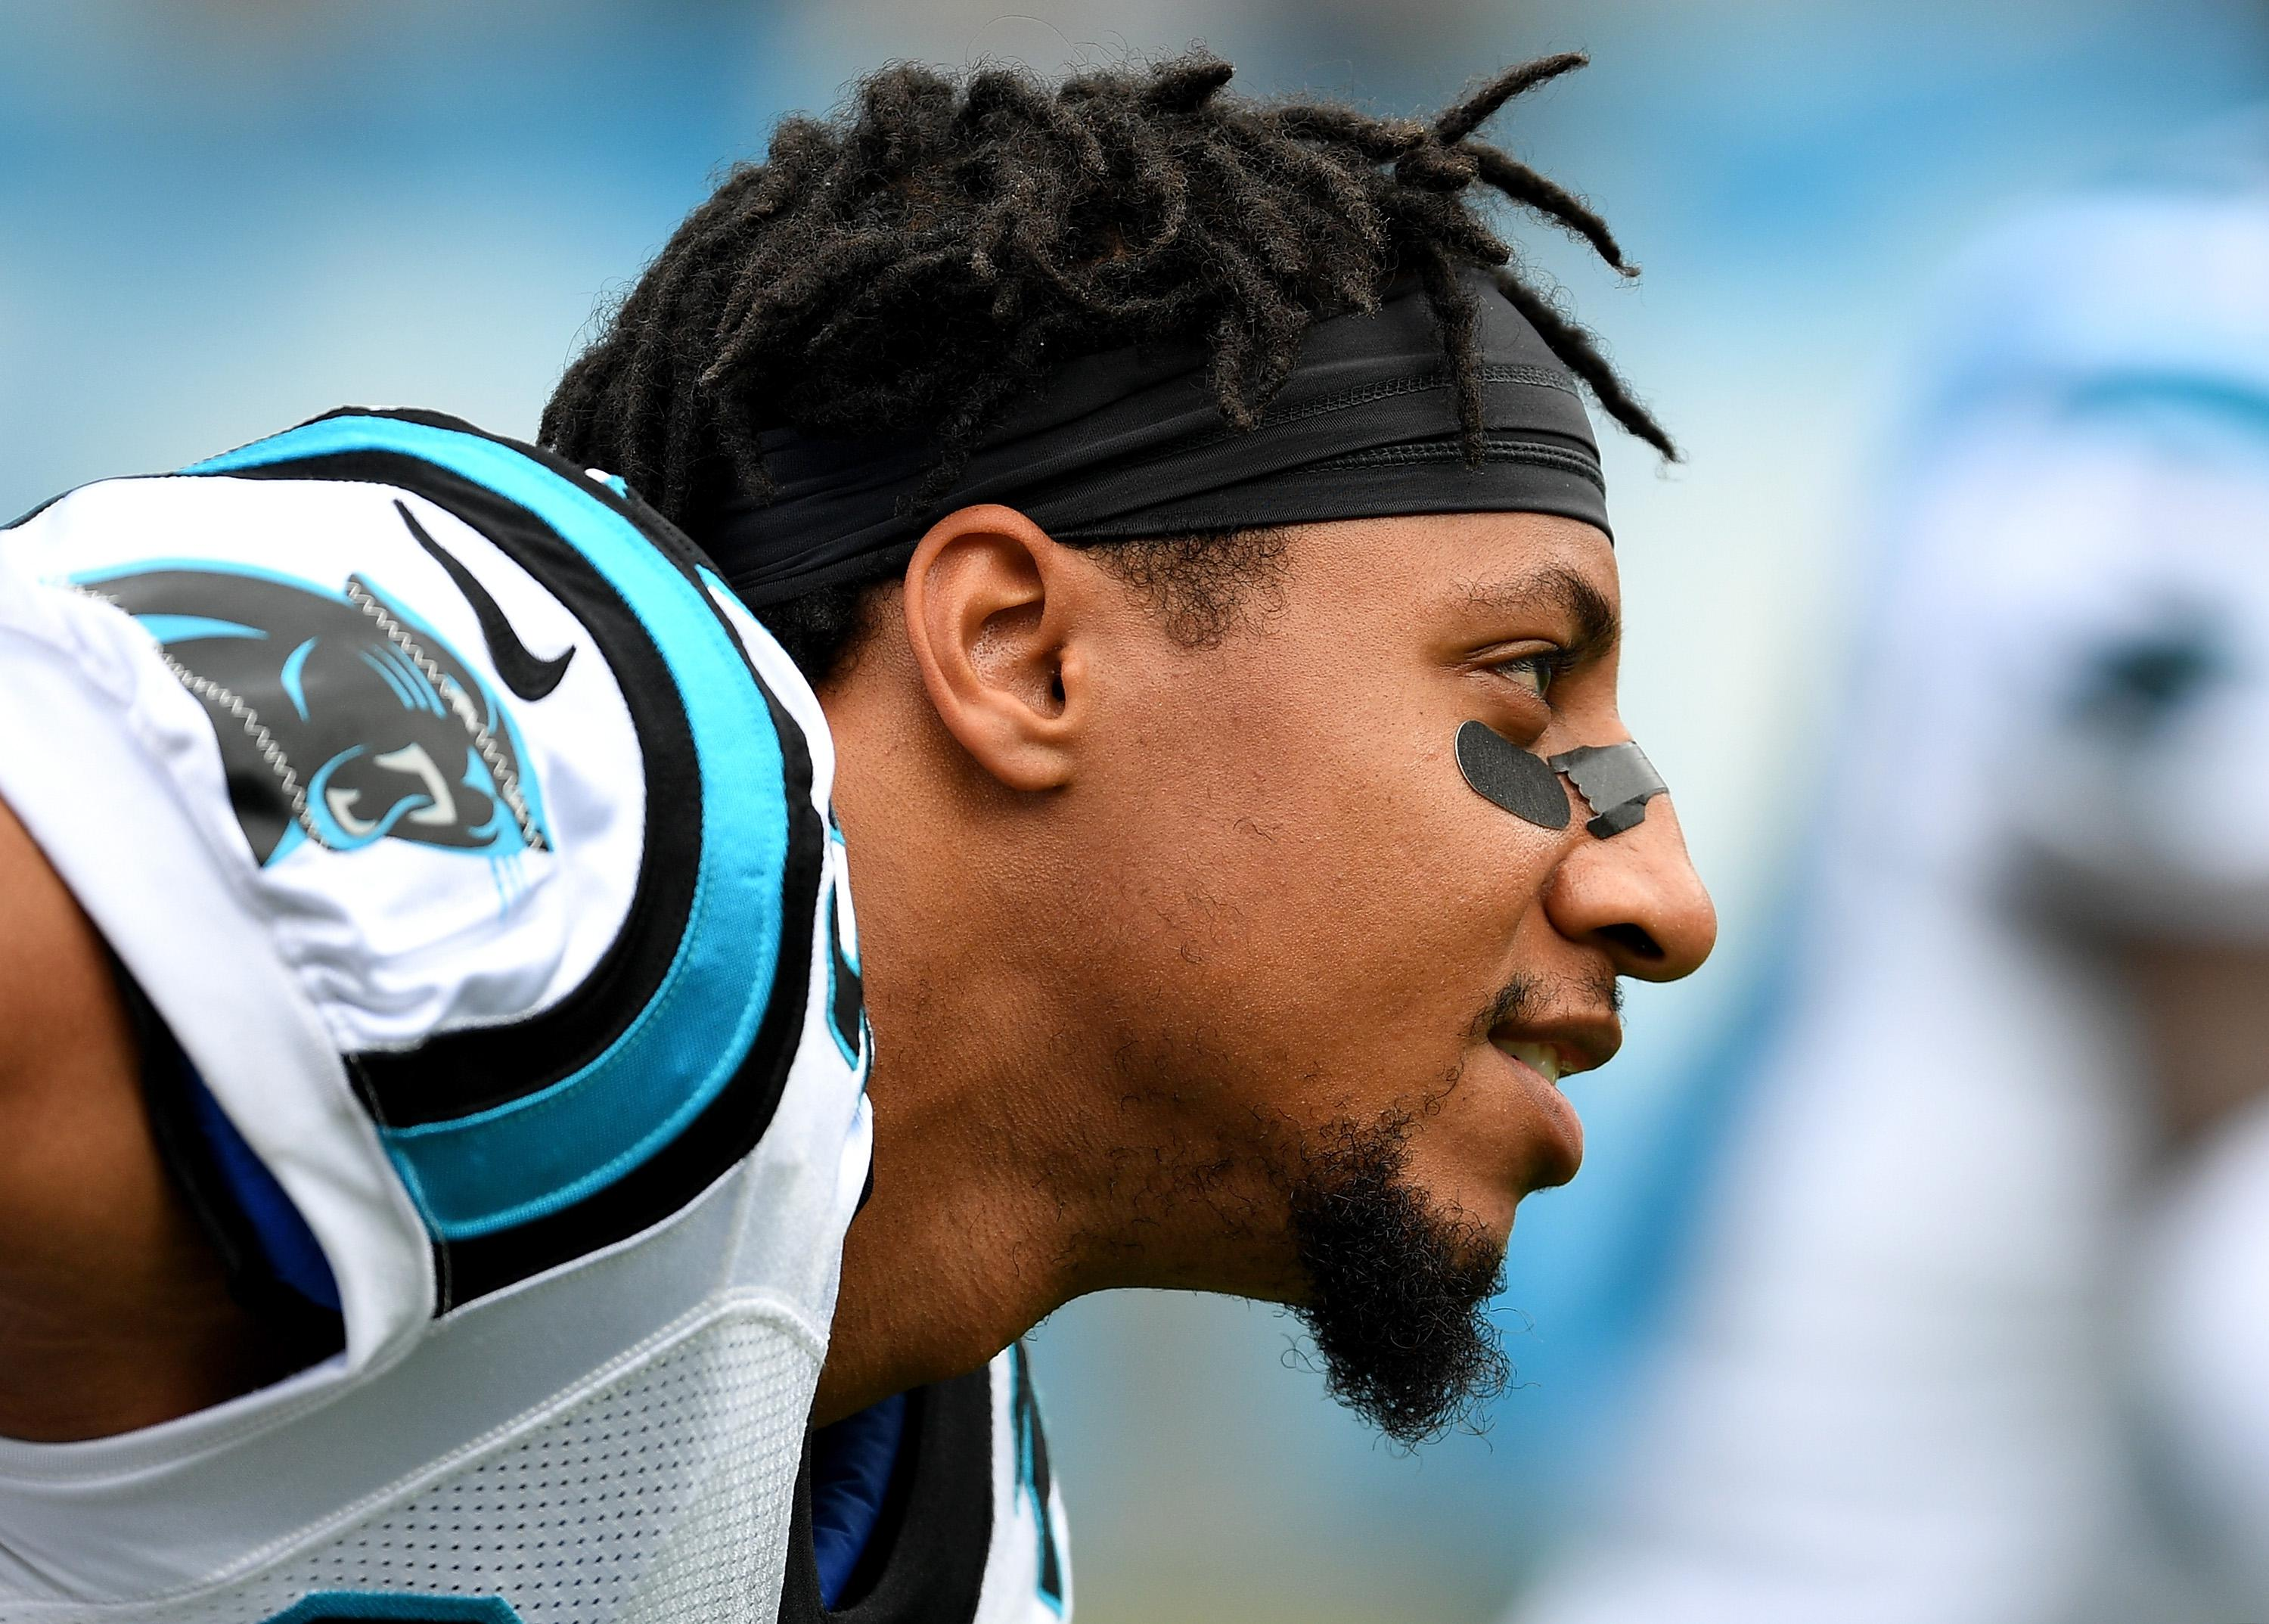 CHARLOTTE, NC - OCTOBER 07:  Eric Reed #25 of the Carolina Panthers warms up during their game against the New York Giants at Bank of America Stadium on October 7, 2018 in Charlotte, North Carolina.  (Photo by Grant Halverson/Getty Images)